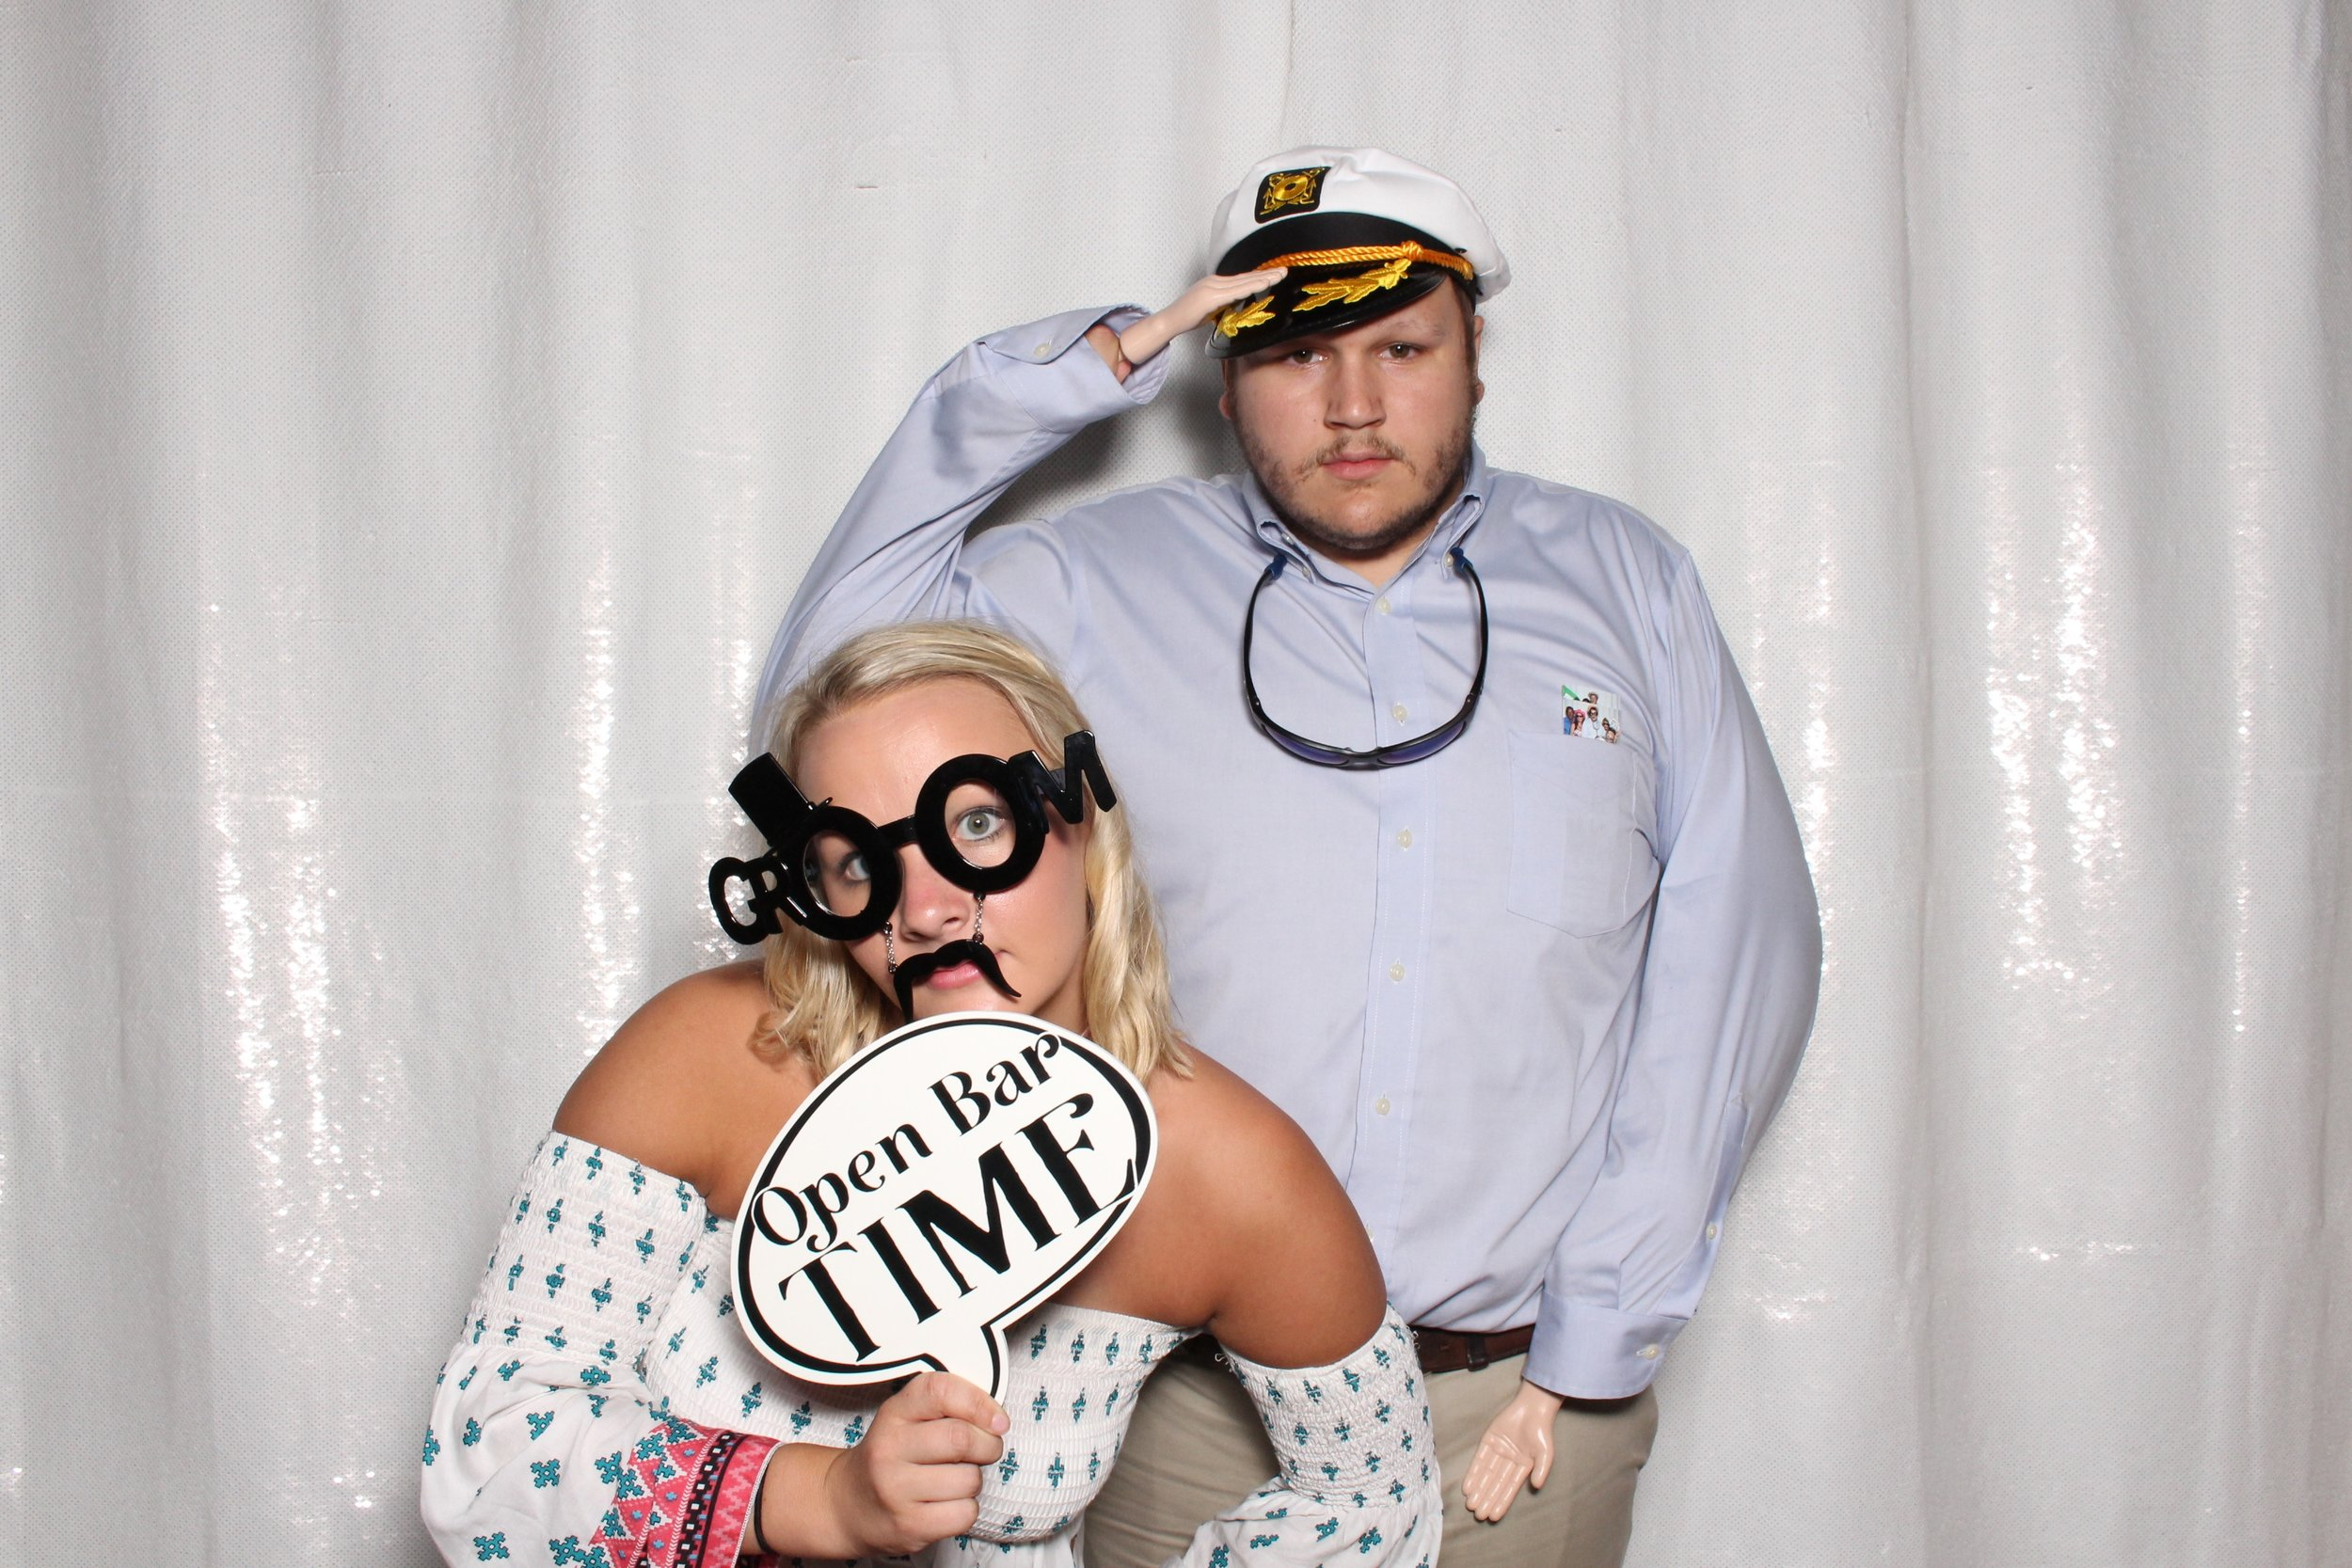 gore wedding off the wall photo booths.jpg